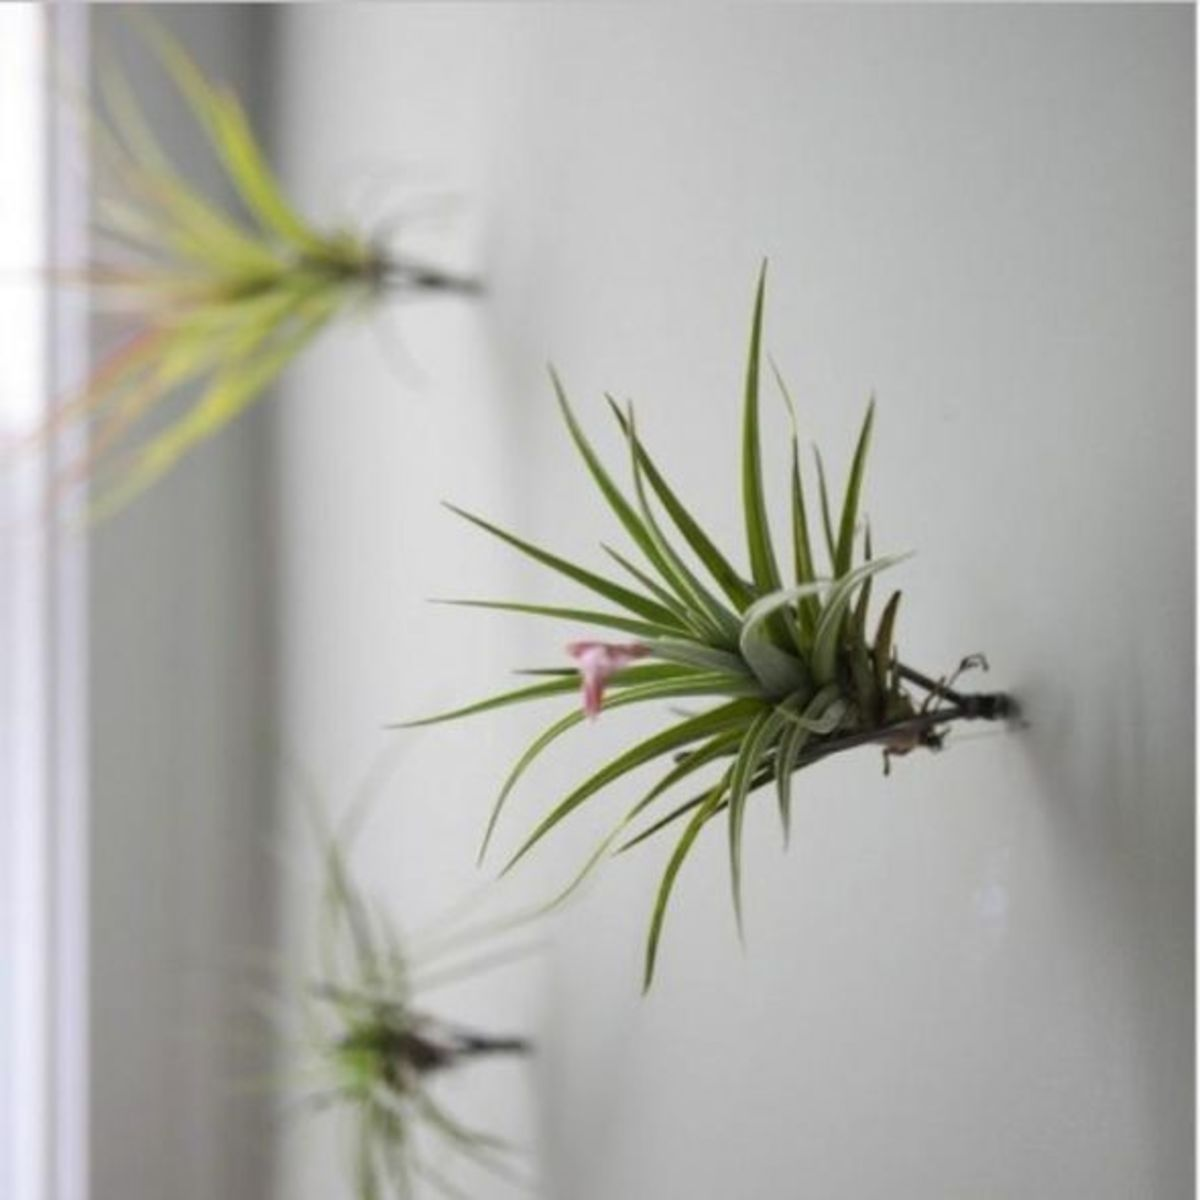 DIY Wall Art - Air Plants via Flora Grubb